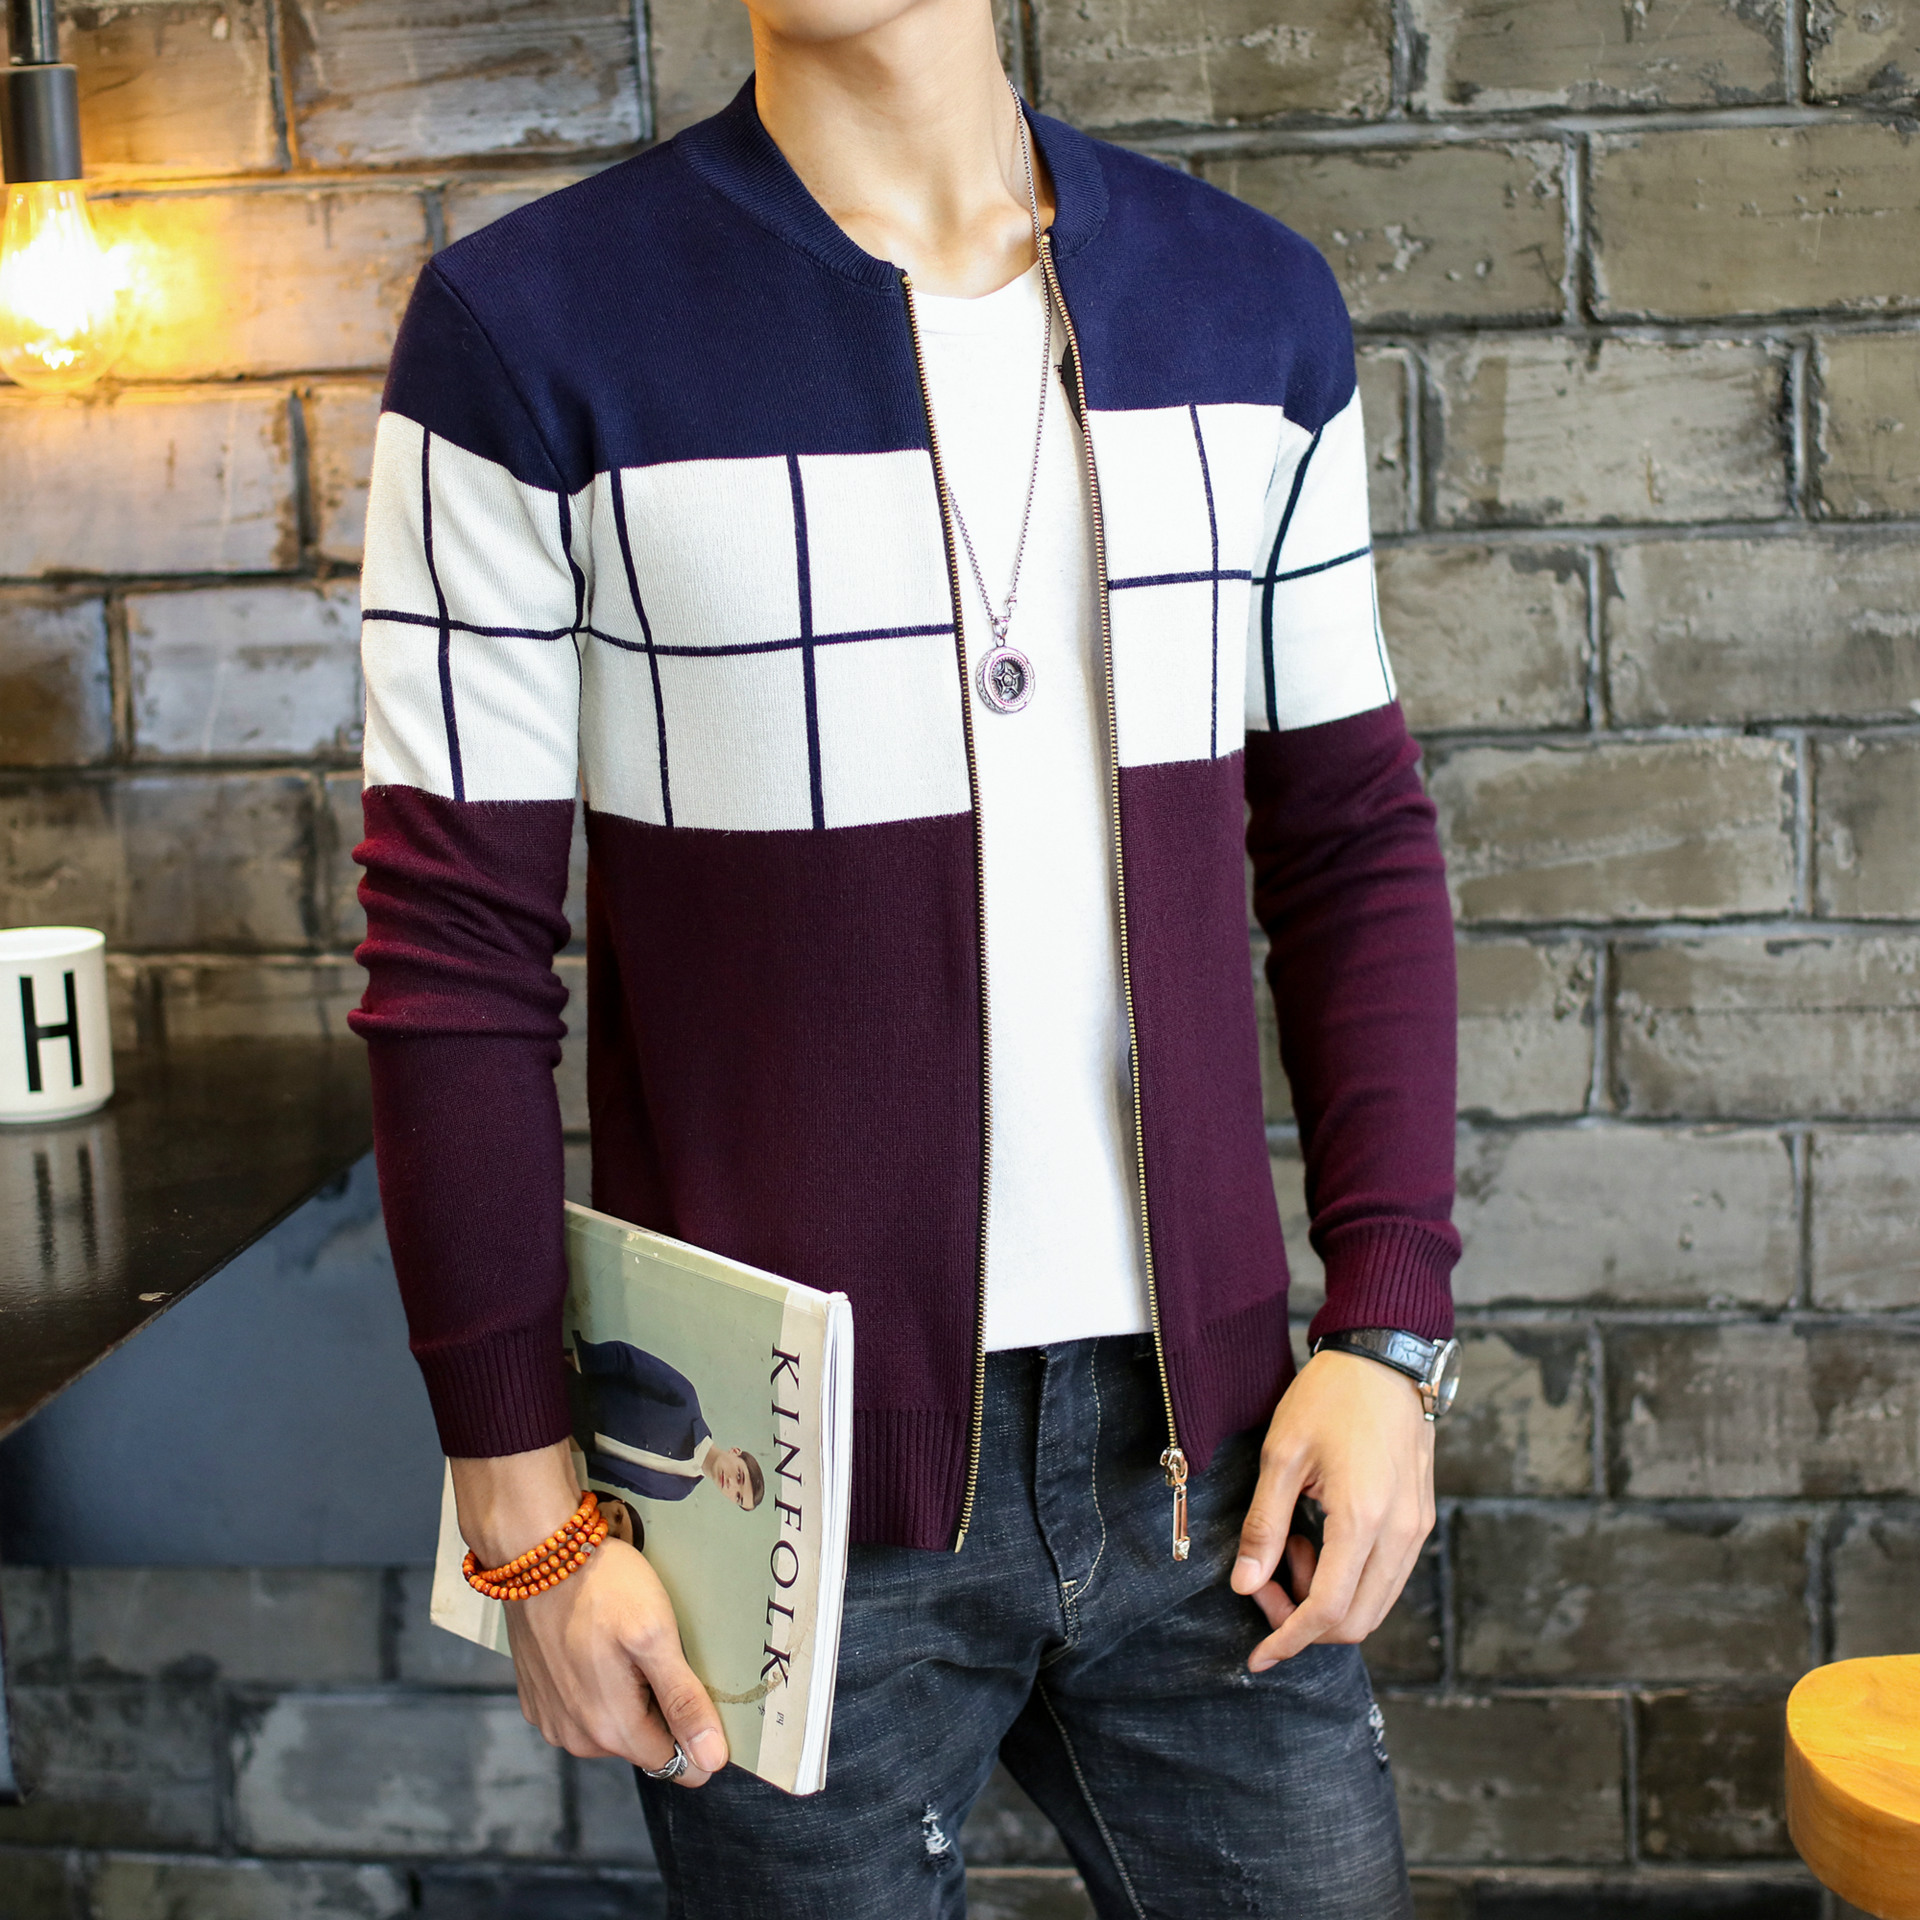 Sweater Autumn Winter Men Fashion Casual Warm X9-171019Z Nice Hot-Selling Wholesale Cheap